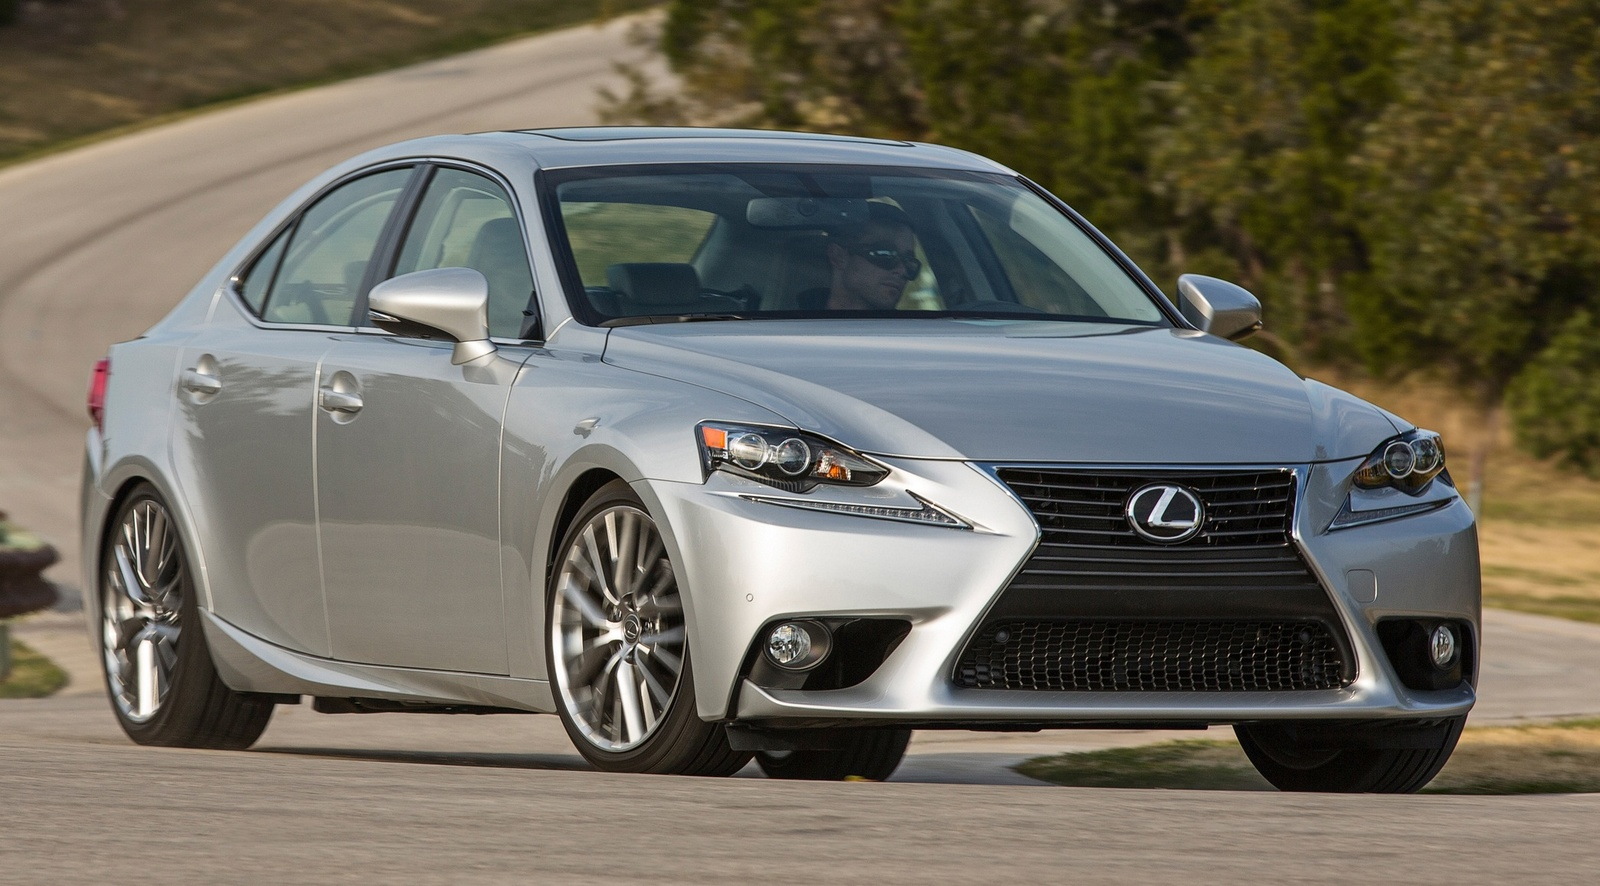 New 2014 2015 Lexus Is 250 For Sale Cargurus